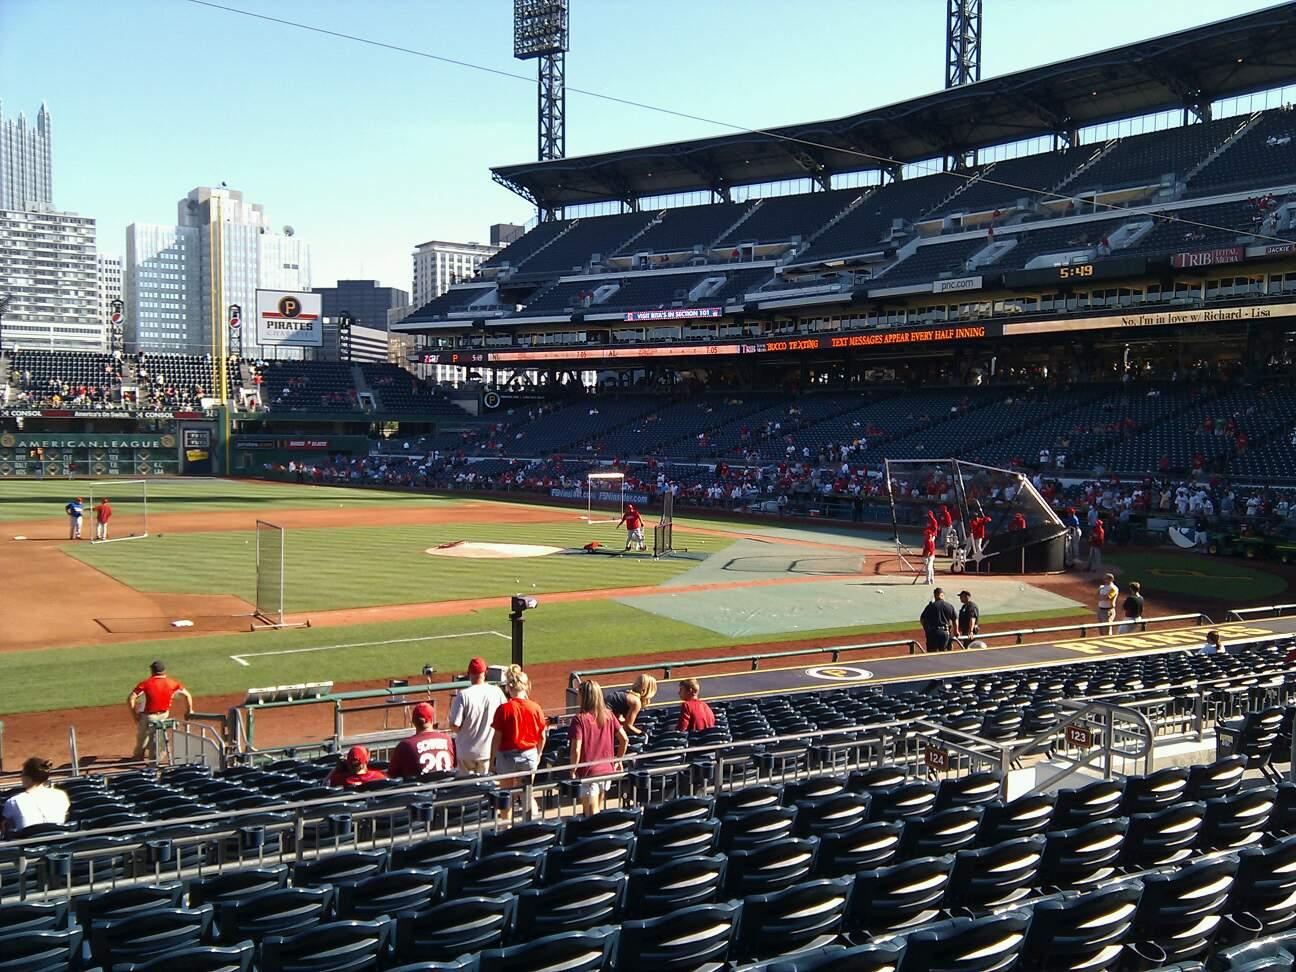 PNC Park Section 124 Row j Seat 14